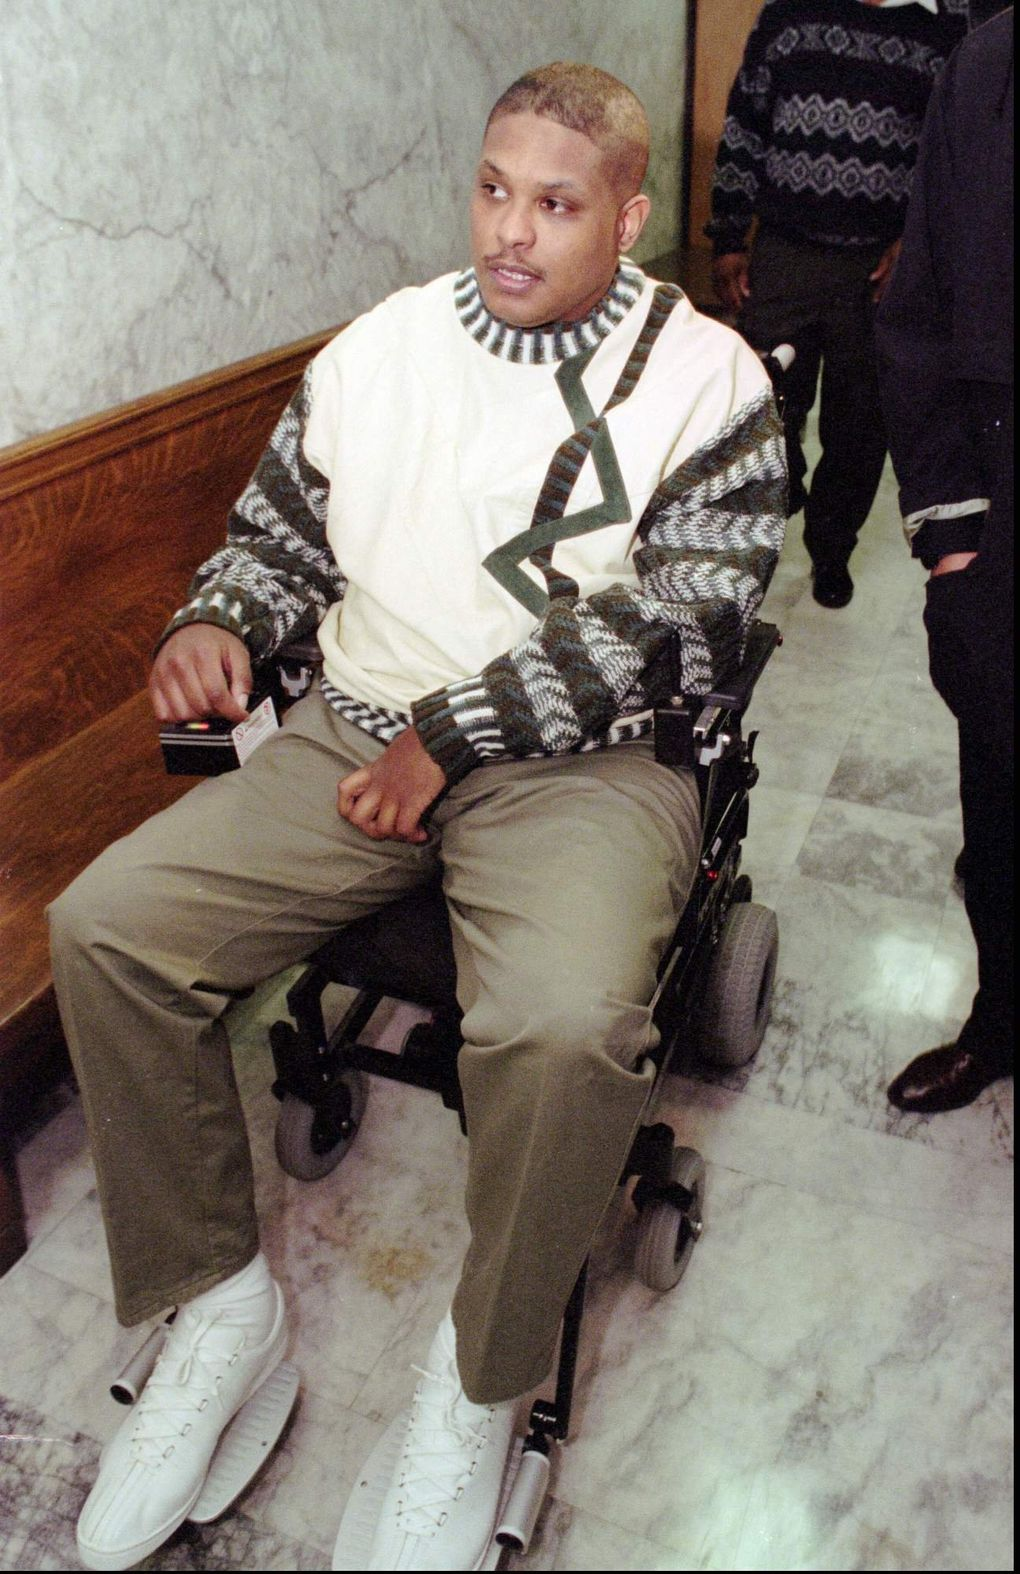 Mike Frier arrives at Superior Court in Seattle in 1996. Frier testified against former teammate Lamar Smith, who was charged with vehicular assault in the Dec. 1, 1994, accident that paralyzed Frier. (ROBERT SORBO/AP)